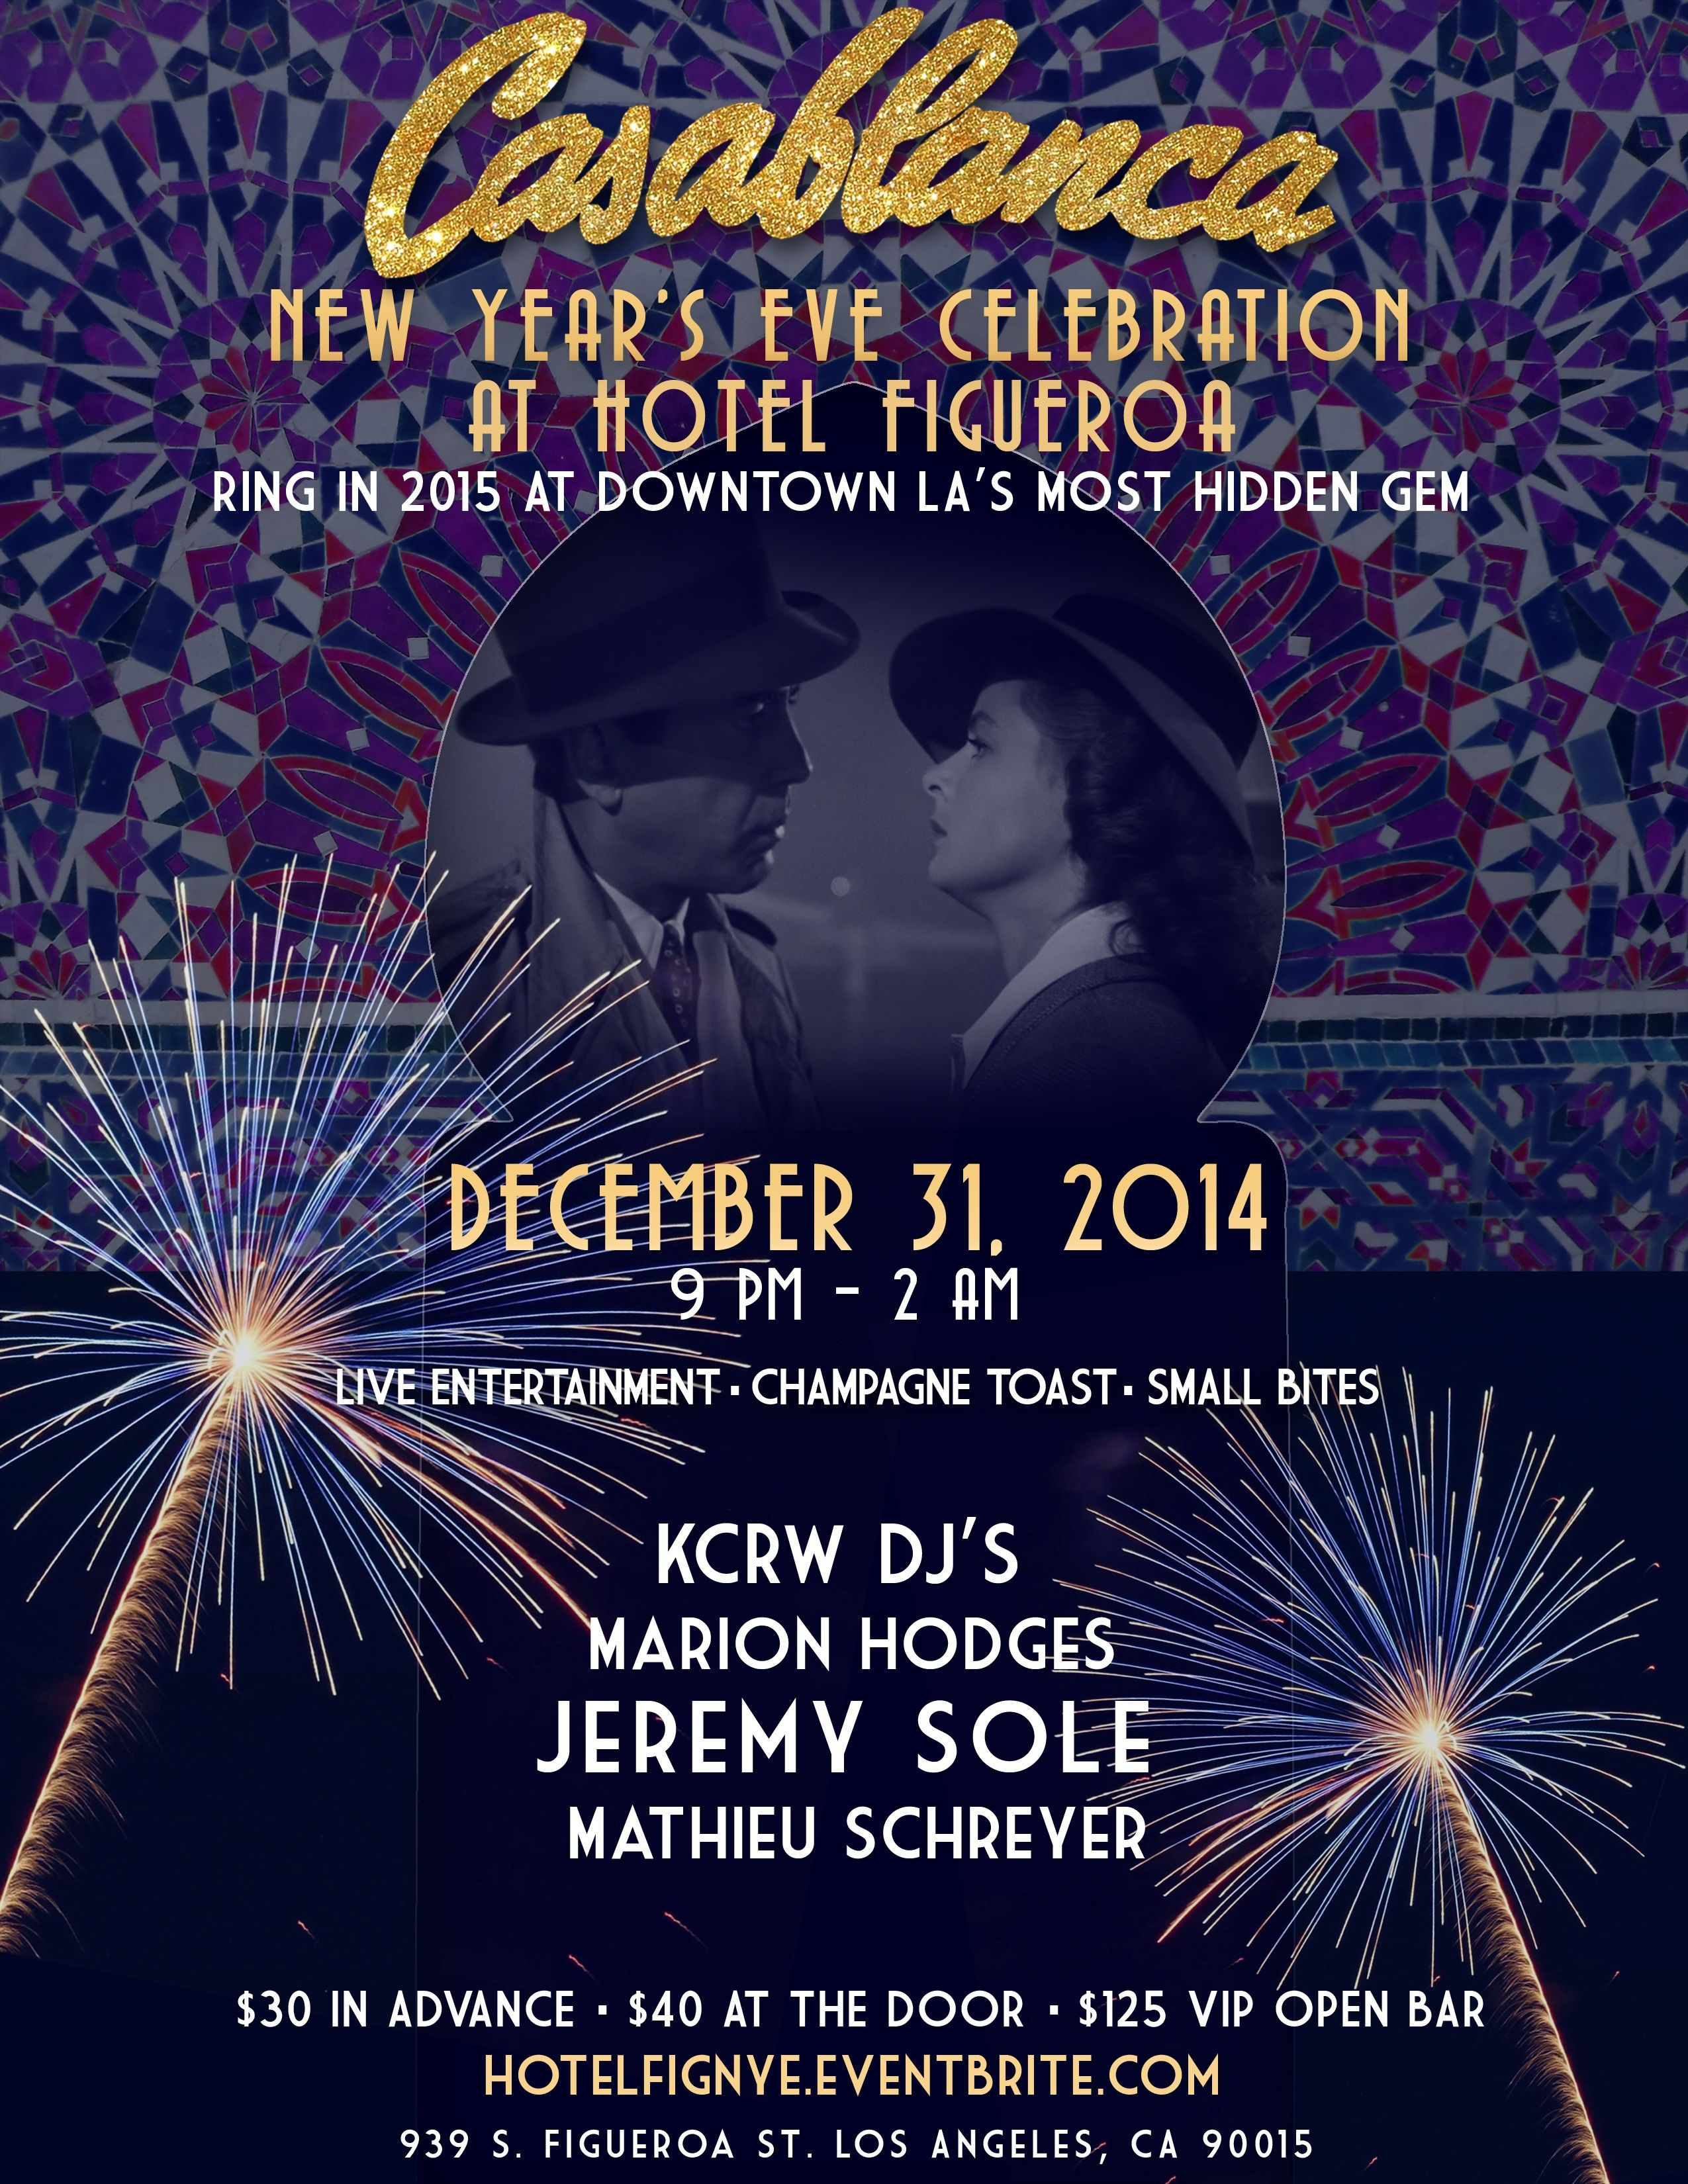 New Year S Eve Party At Hotel Figueroa In Downtown La Newyearseve Losangeles Dtla Hotelfiguero New Year S Eve Celebrations Downtown La New Years Eve Party